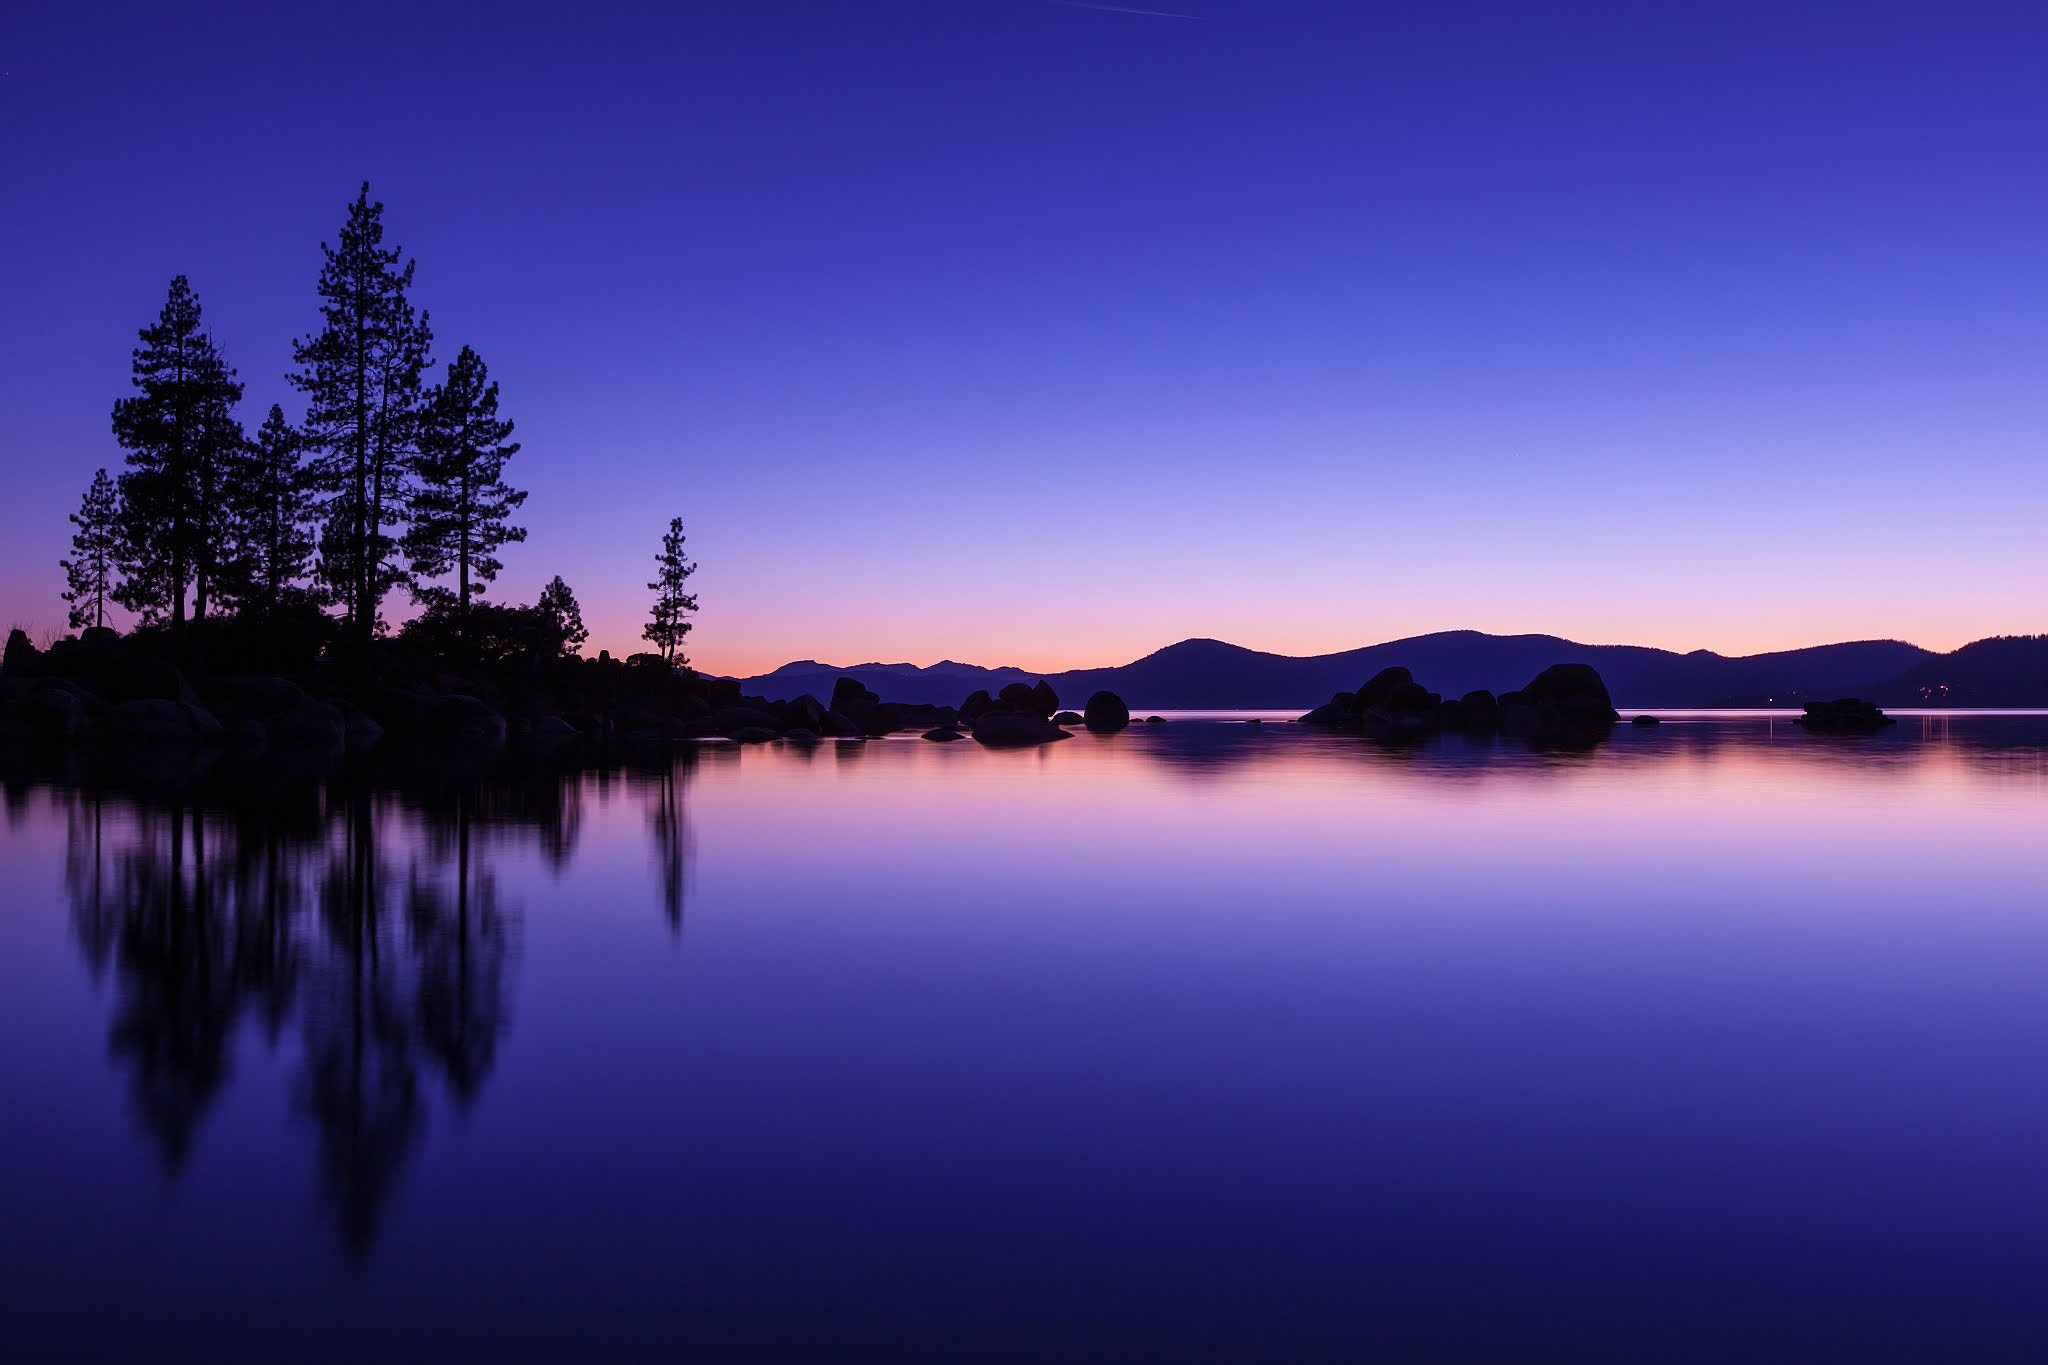 Peaceful background download free amazing backgrounds for desktop mobile laptop in any - Foto wallpaper ...